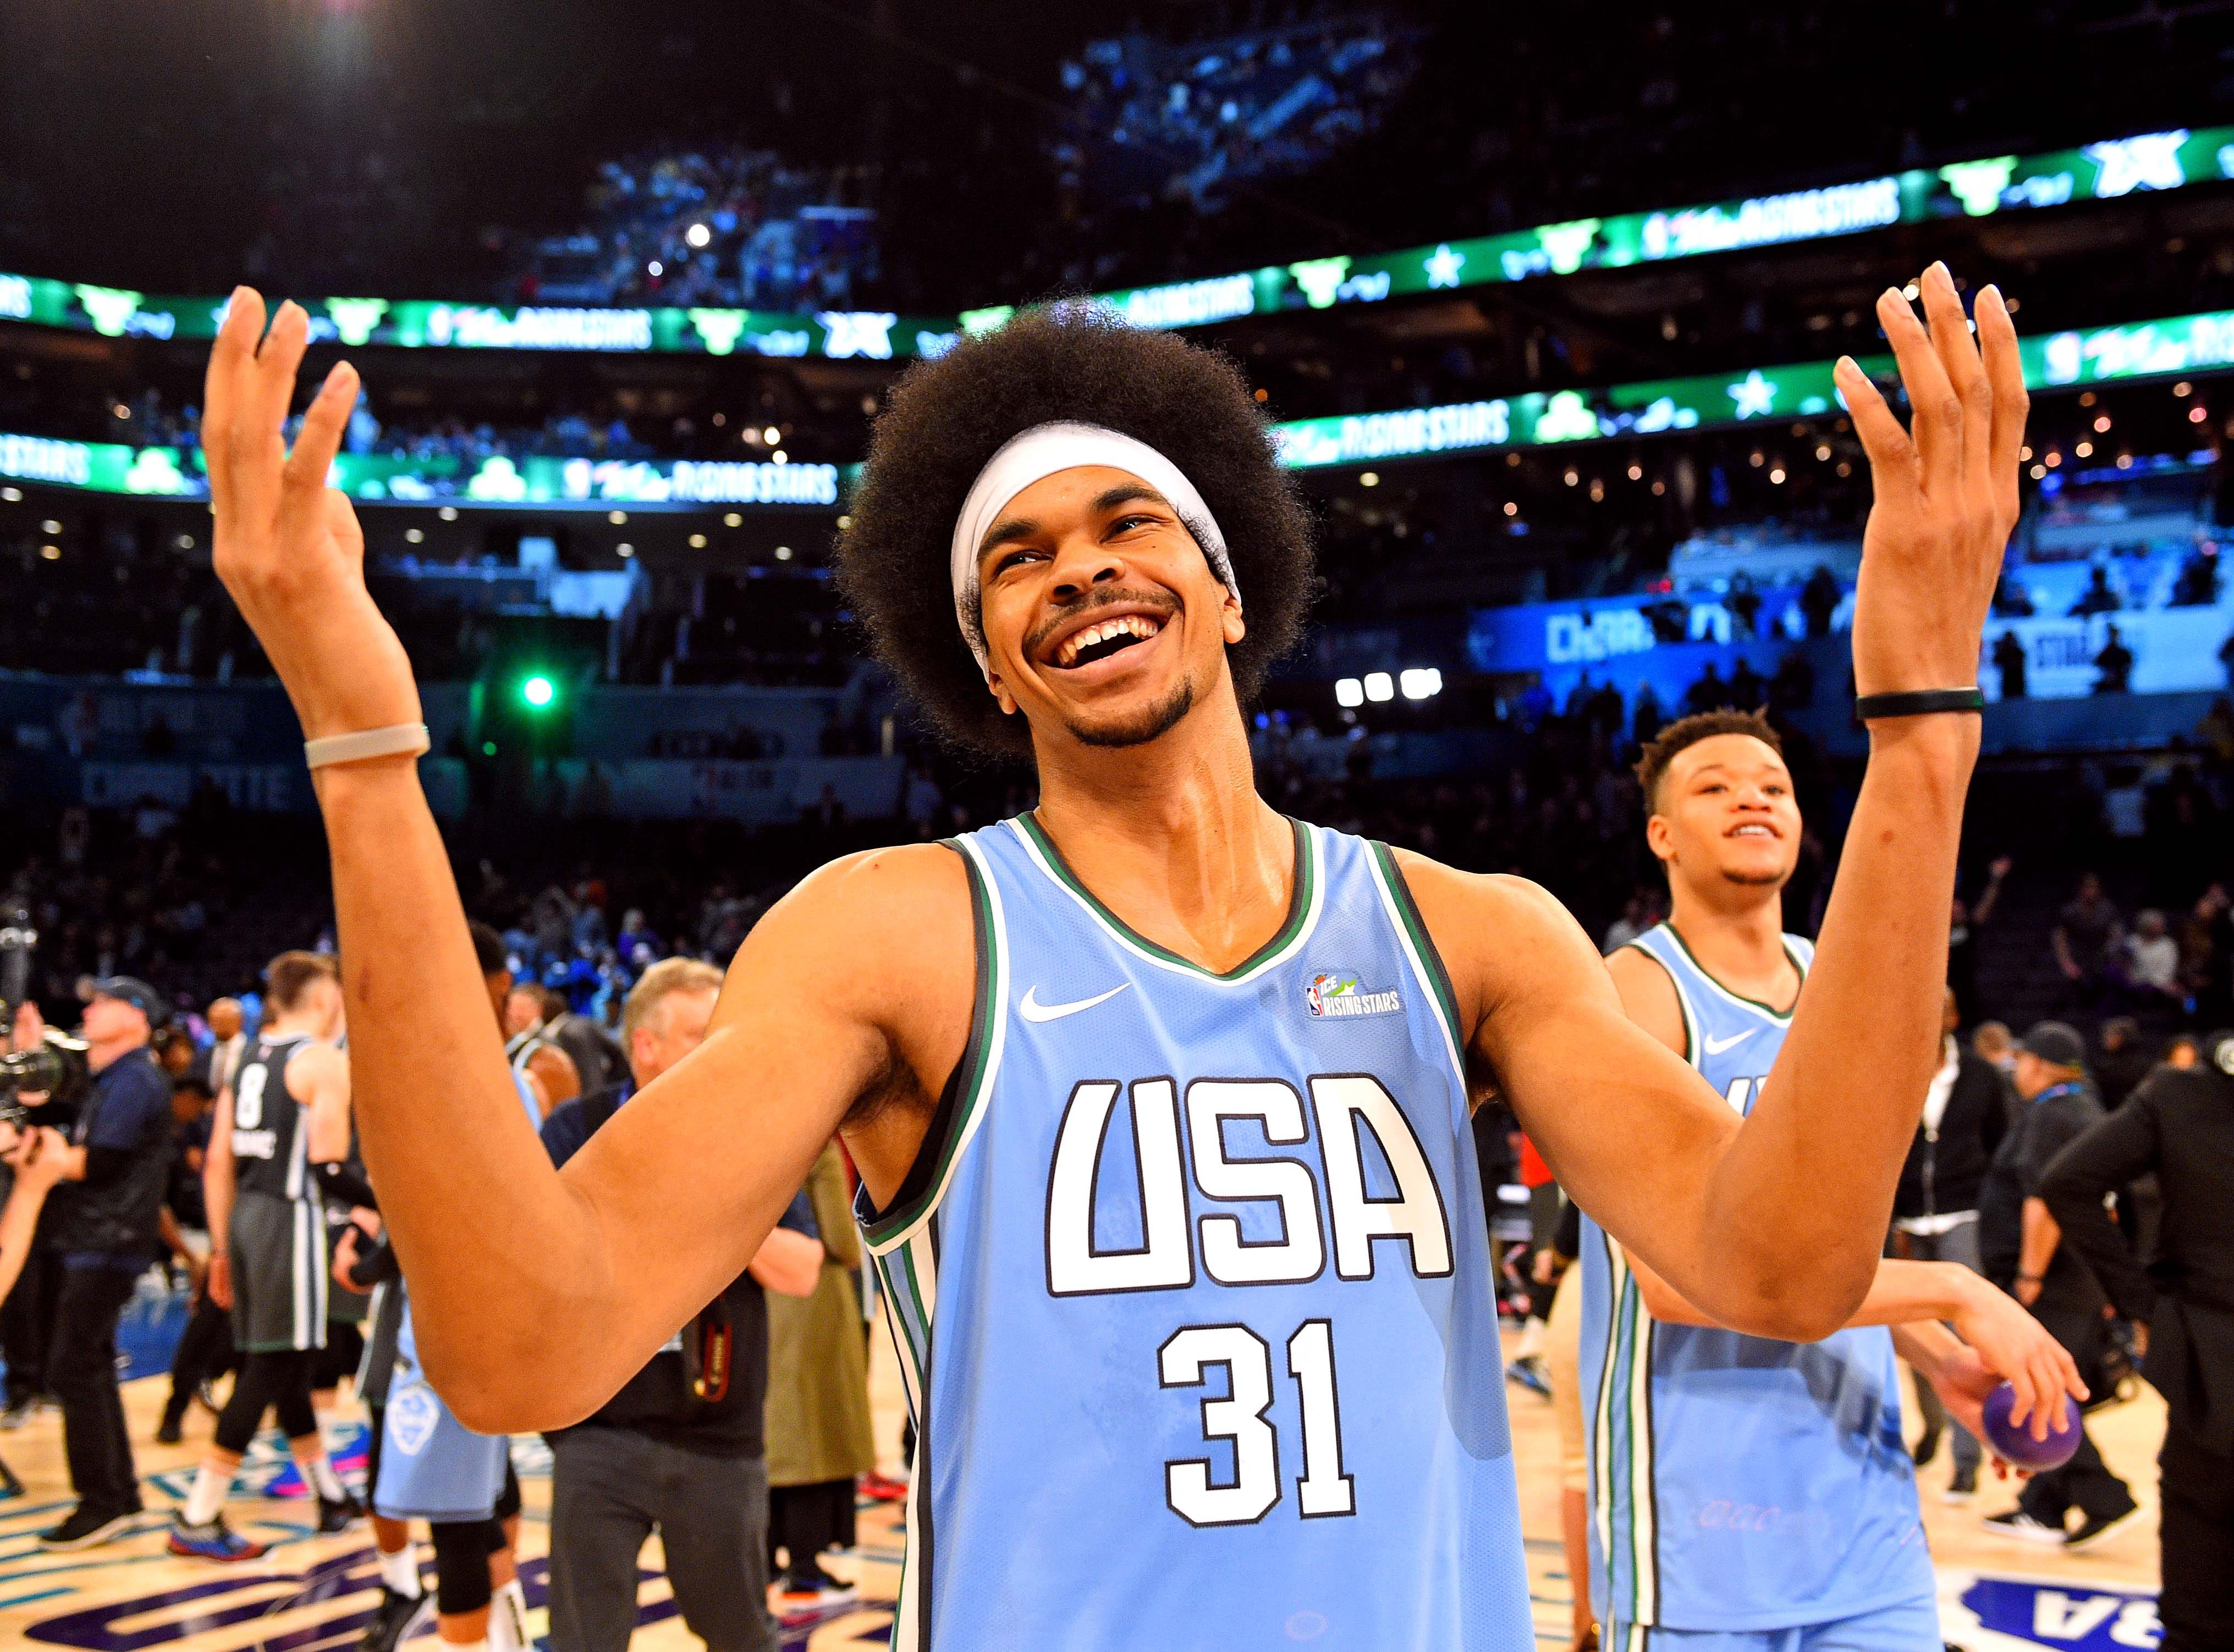 U.S. Team center Jarrett Allen of the Brooklyn Nets reacts after the All-Star Rising Stars game.